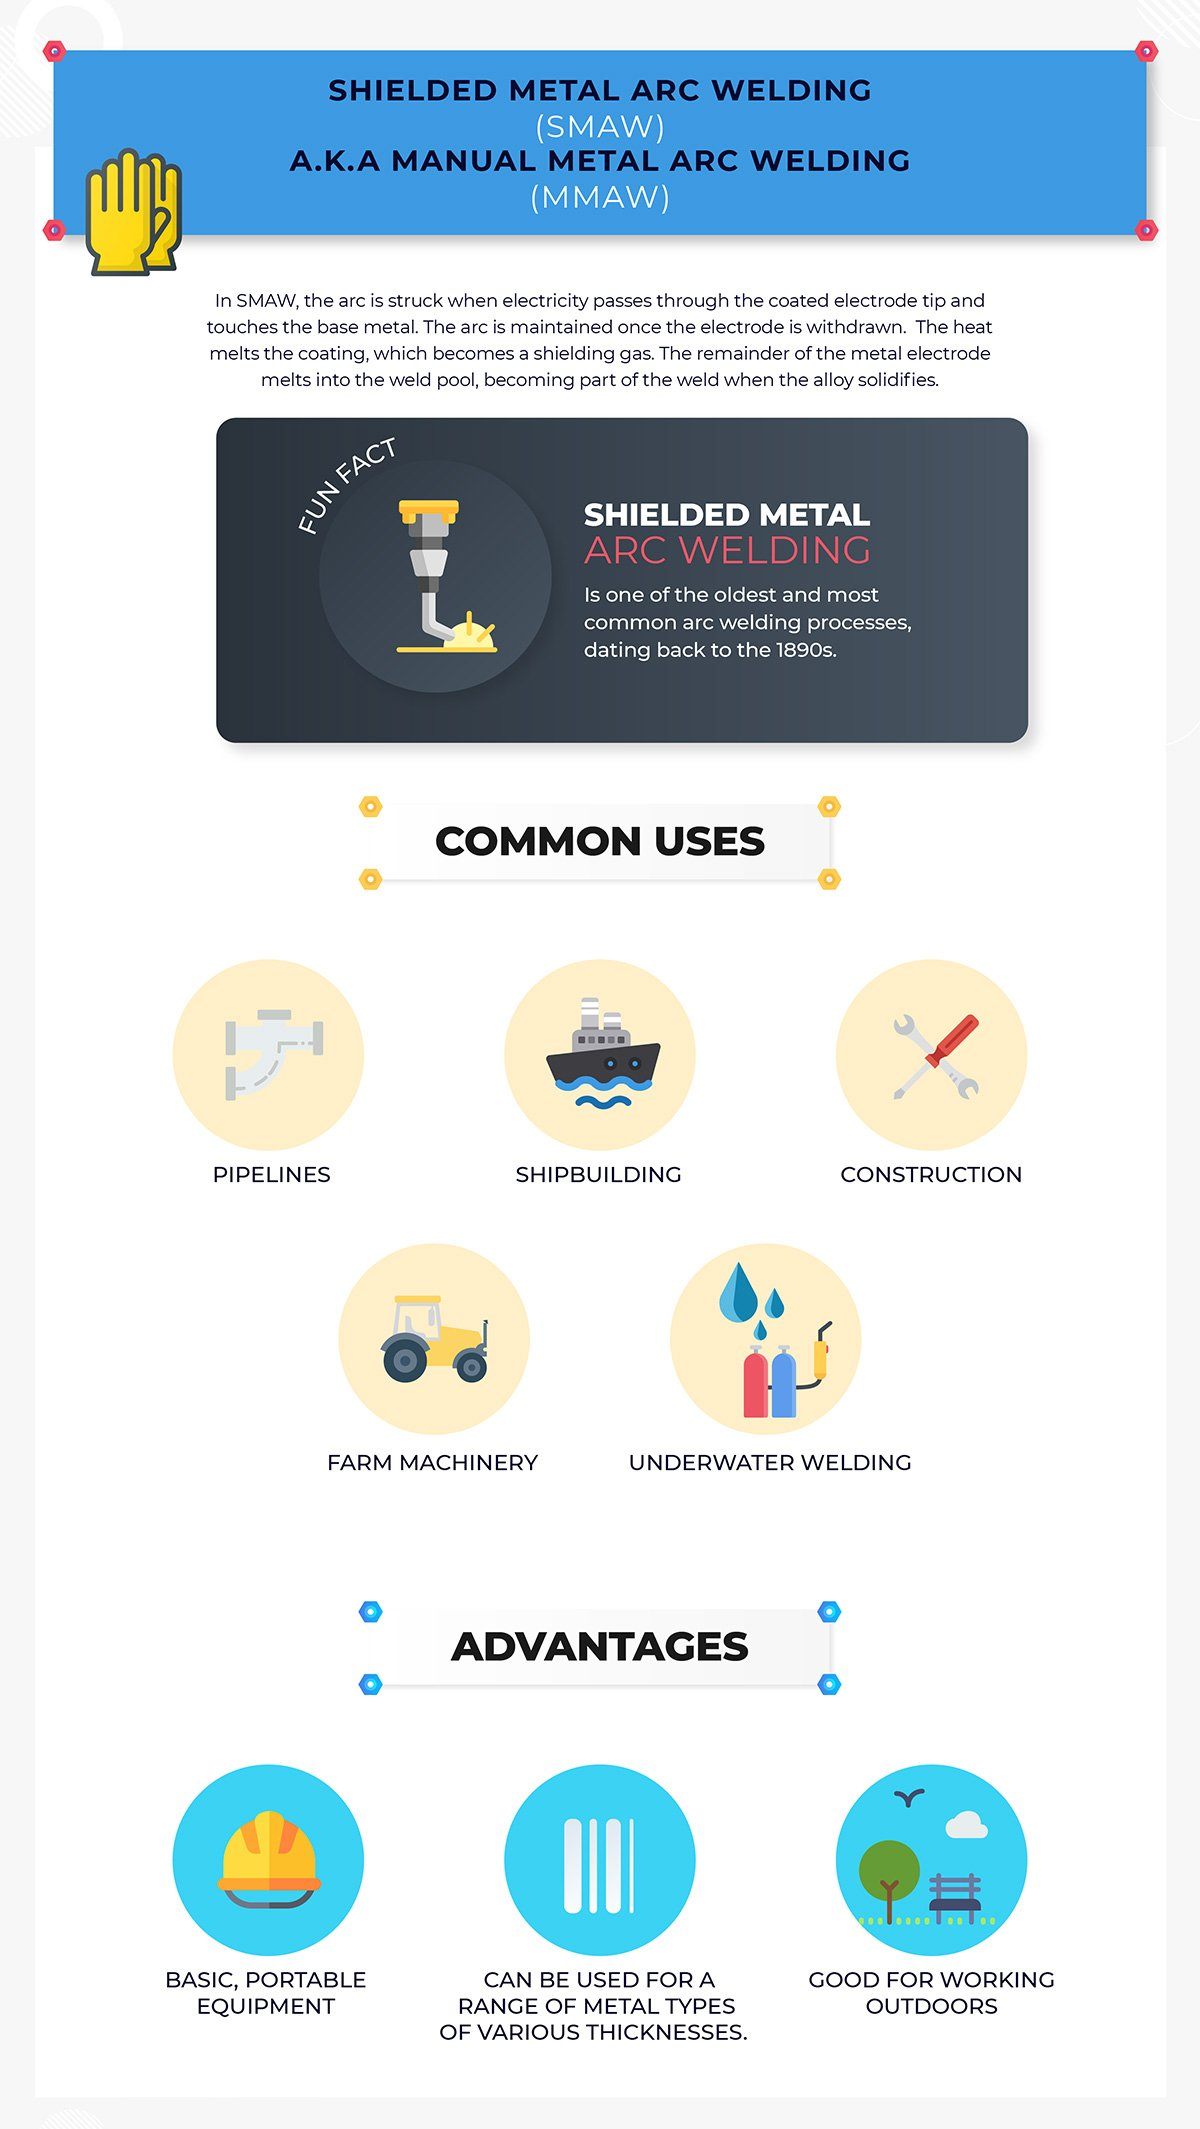 SMAW welding uses and advantages